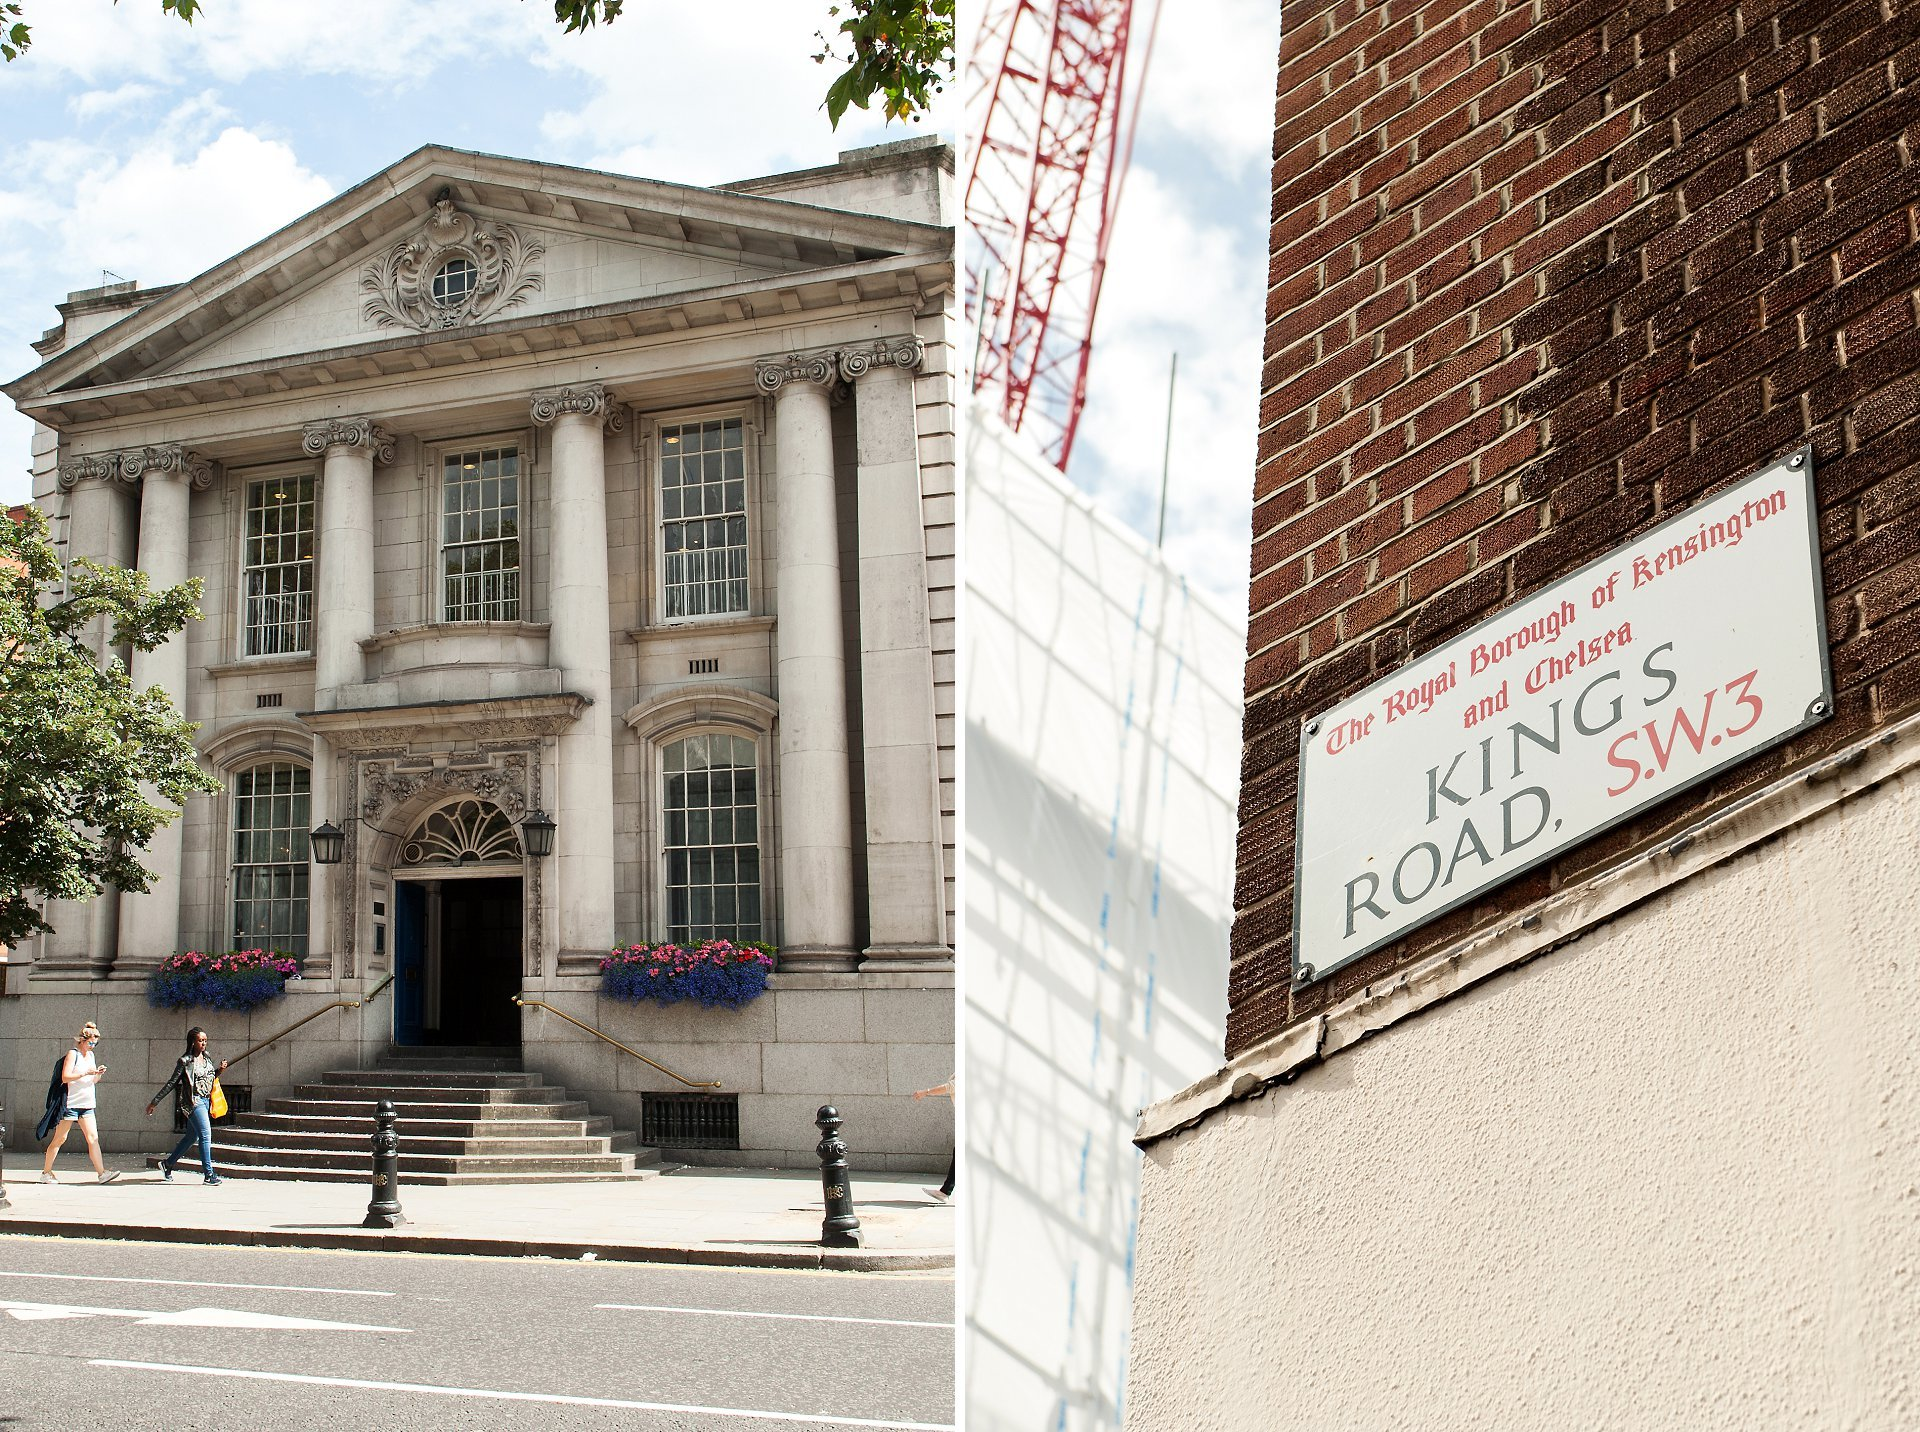 Chelsea Old Town Hall on London's King's Road for civil wedding ceremonies in the Brydon or Rossetti Room